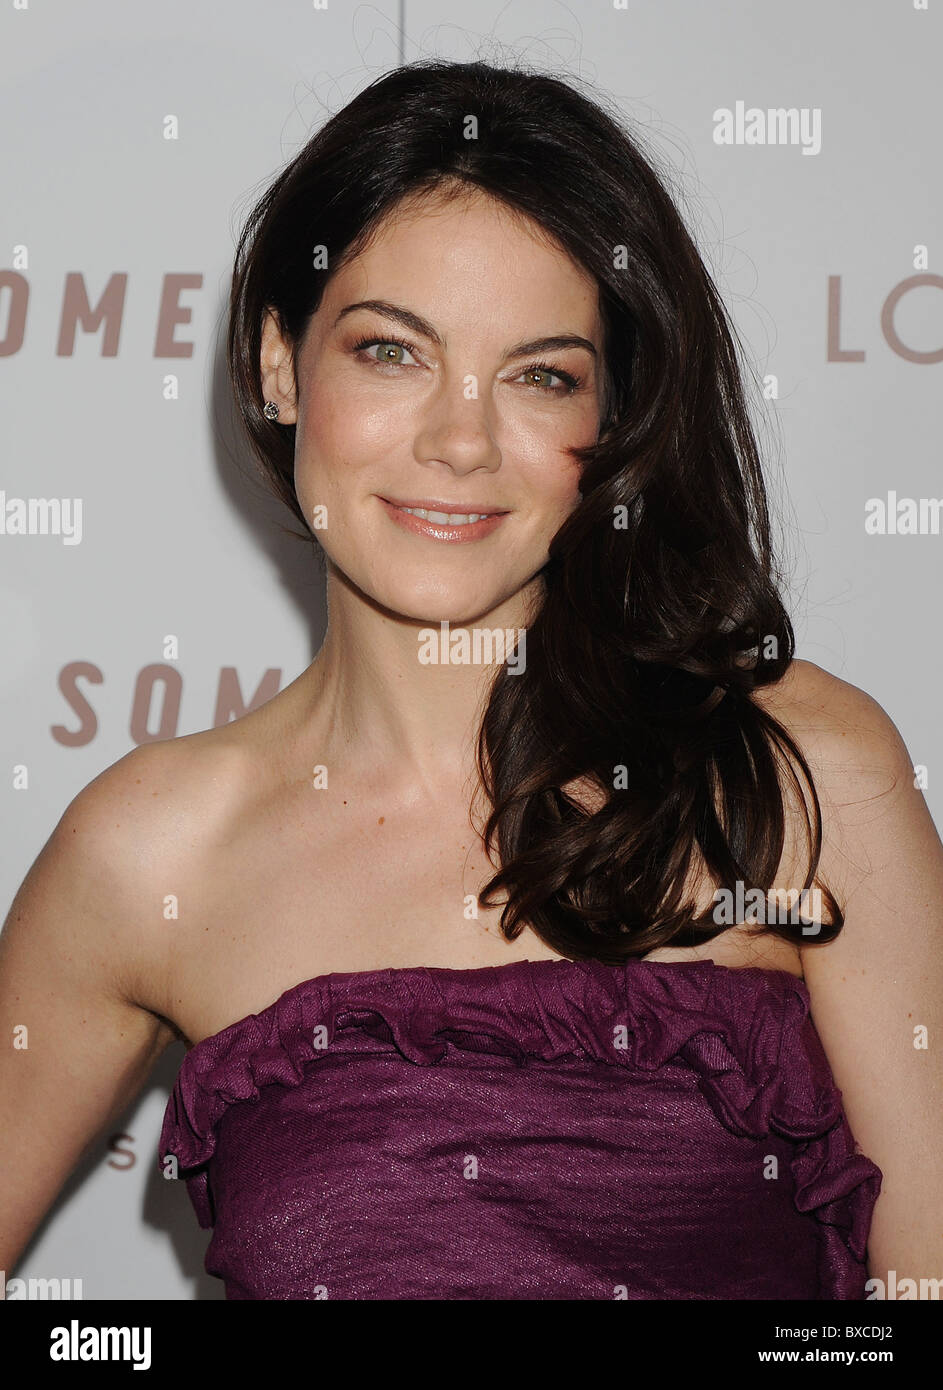 MICHELLE MONAGHAN  US film actress in December 2010. Photo Jeffrey Mayer - Stock Image